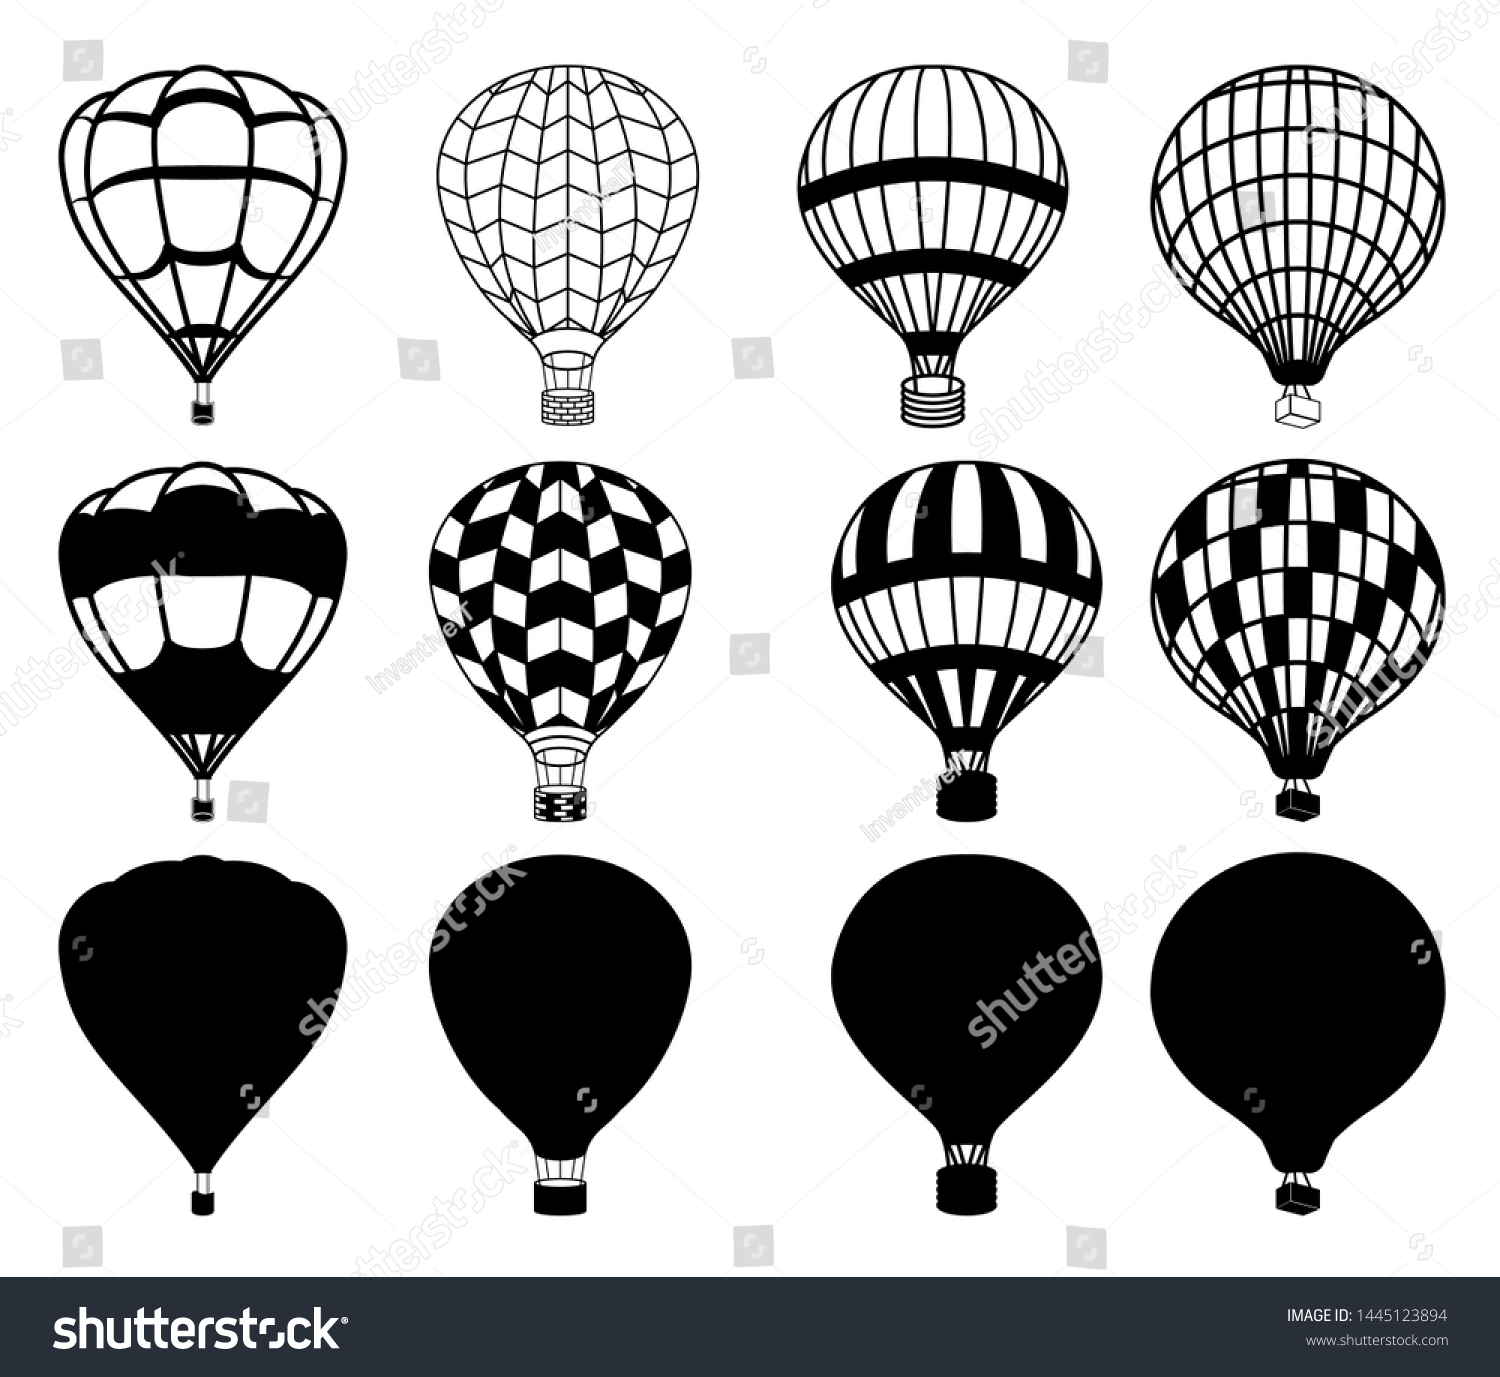 Hot Air Balloon Vector Illustration Silhouette Stock Vector Royalty Free 1445123894